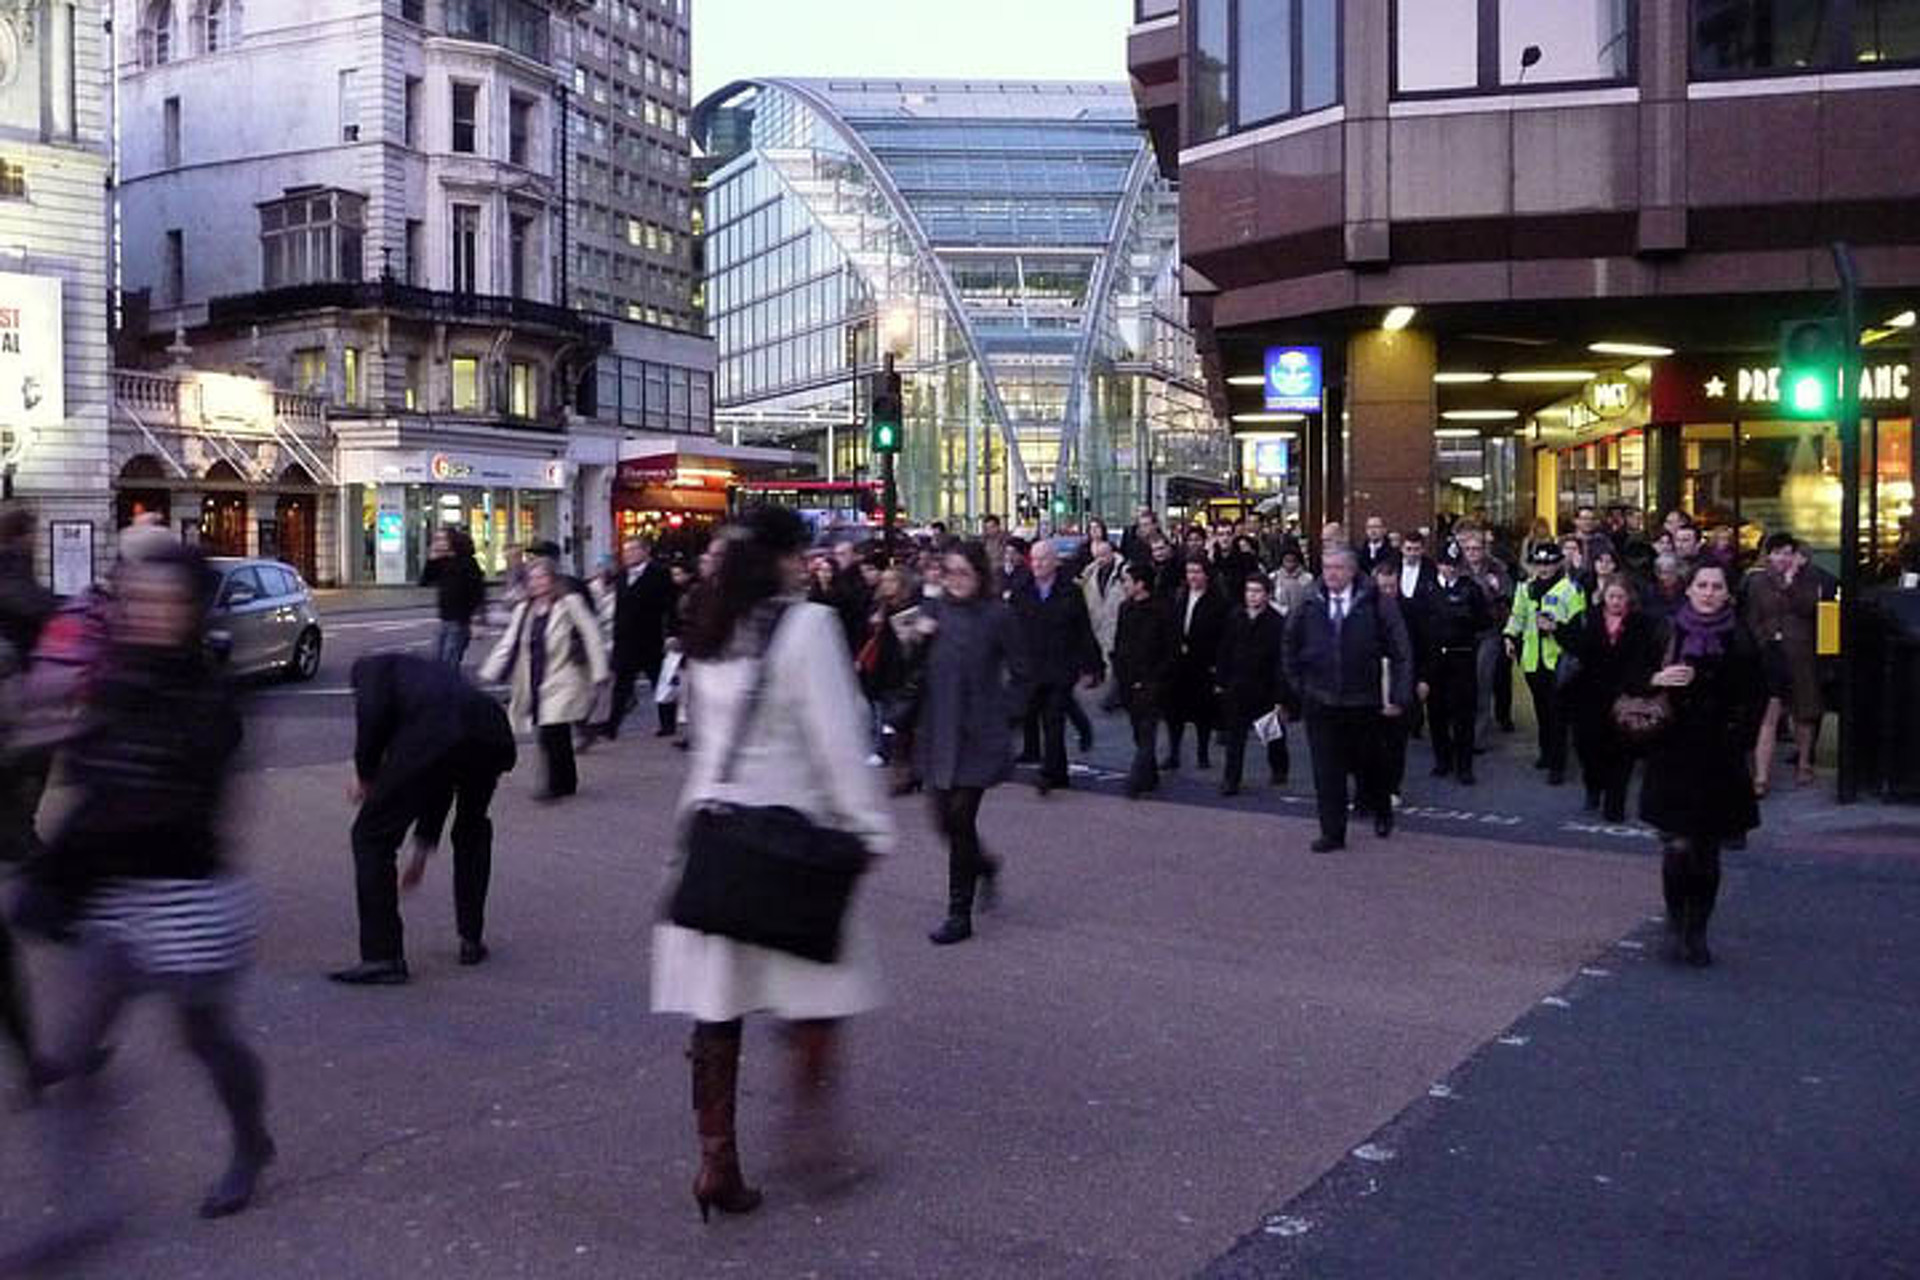 UK To Lengthen Red Lights For Pedestrian Safety